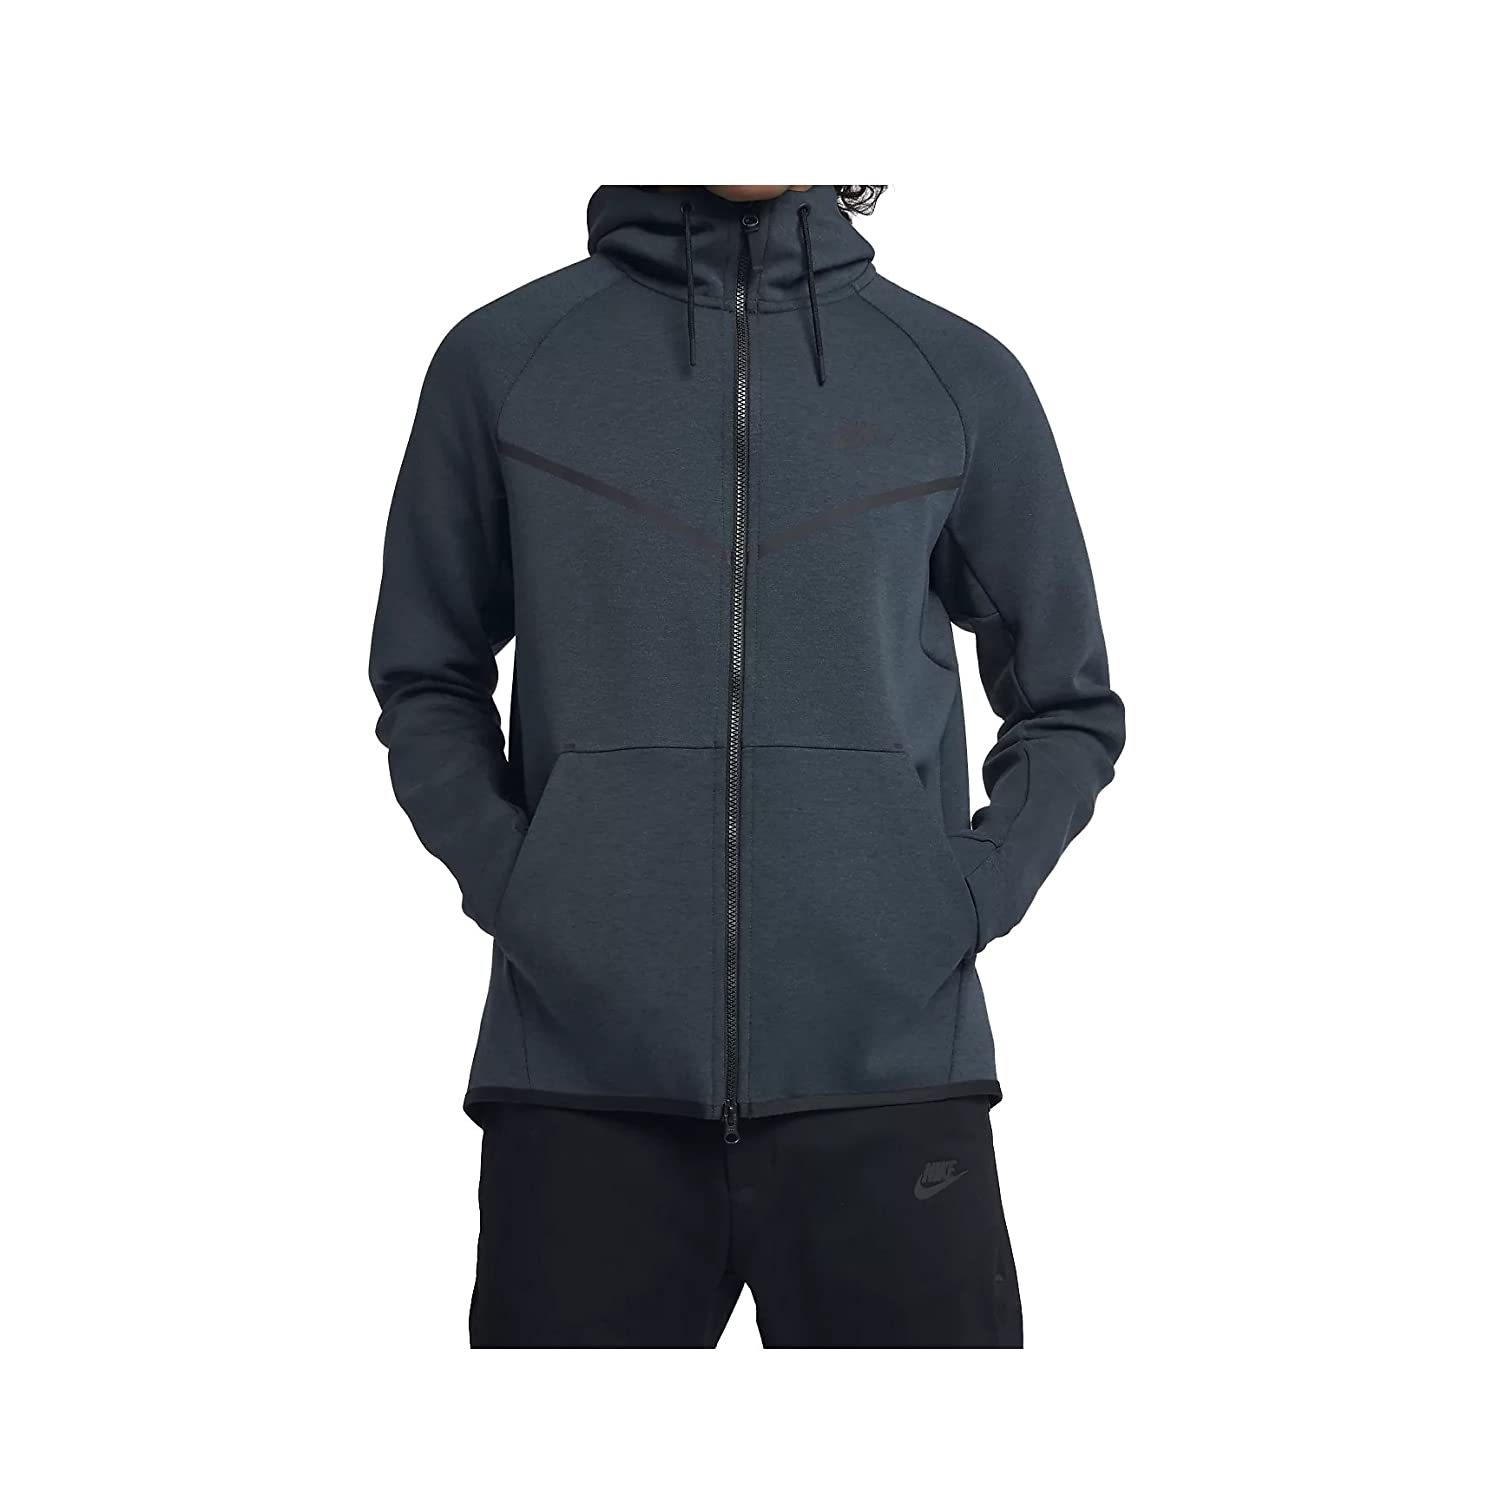 cfab2b2637c Amazon.com  Men s Nike Sportswear Windrunner Jacket  NIKE  Clothing